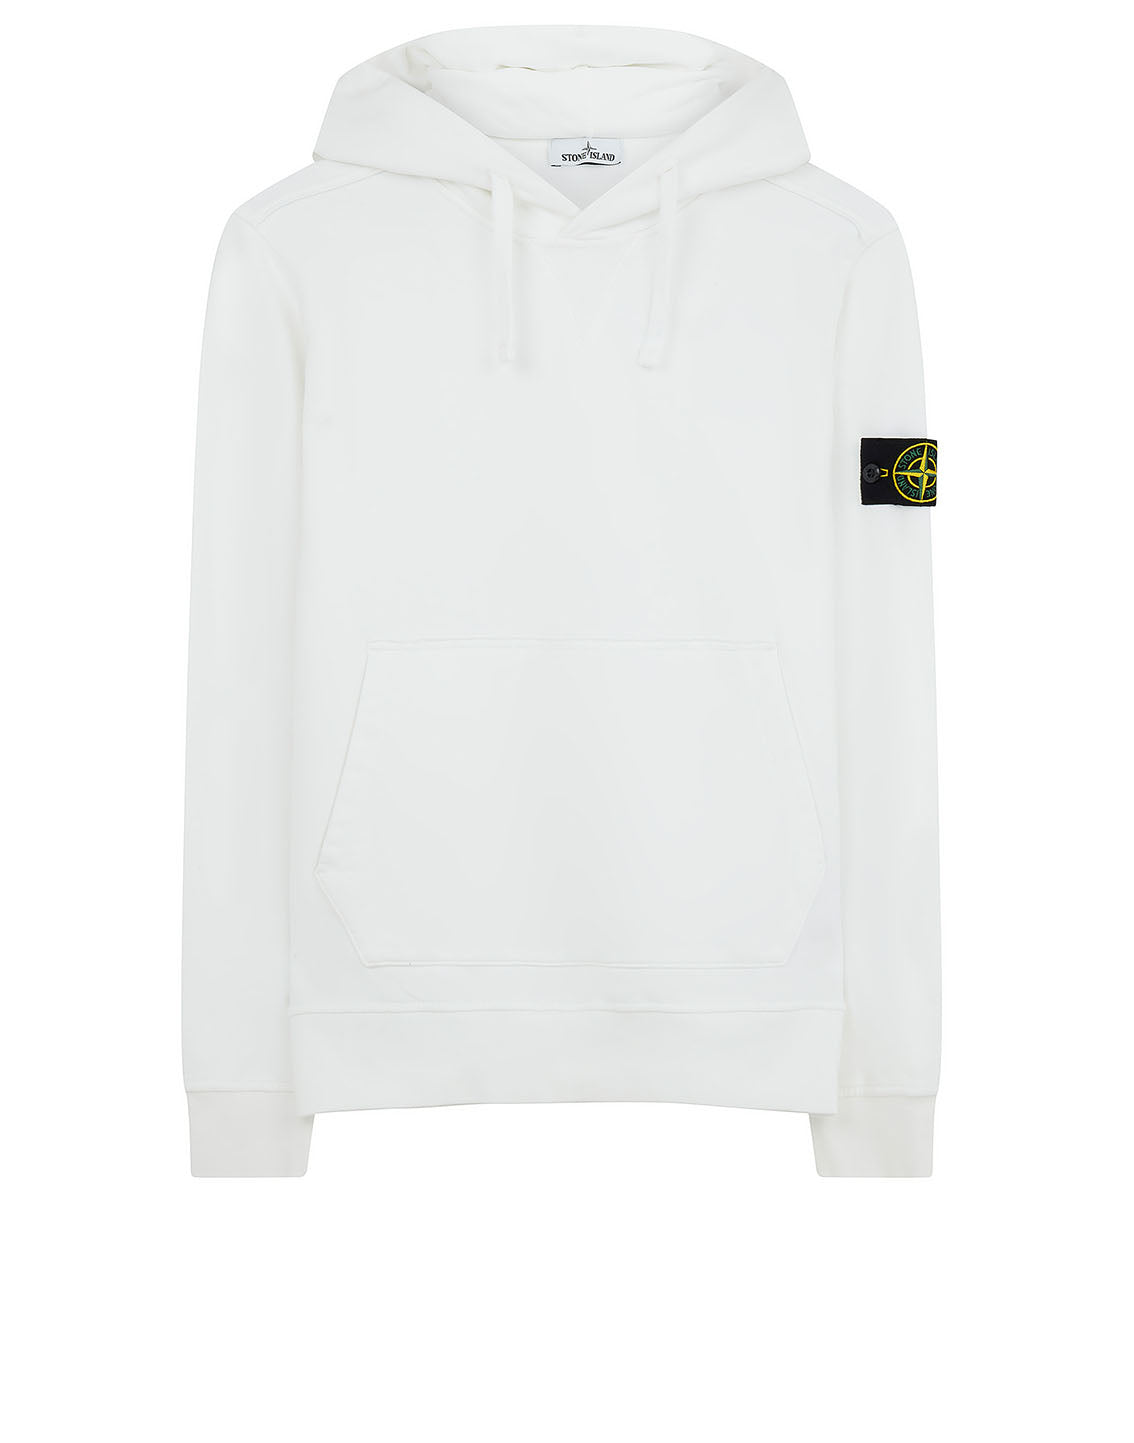 62851 Hooded Sweatshirt in White